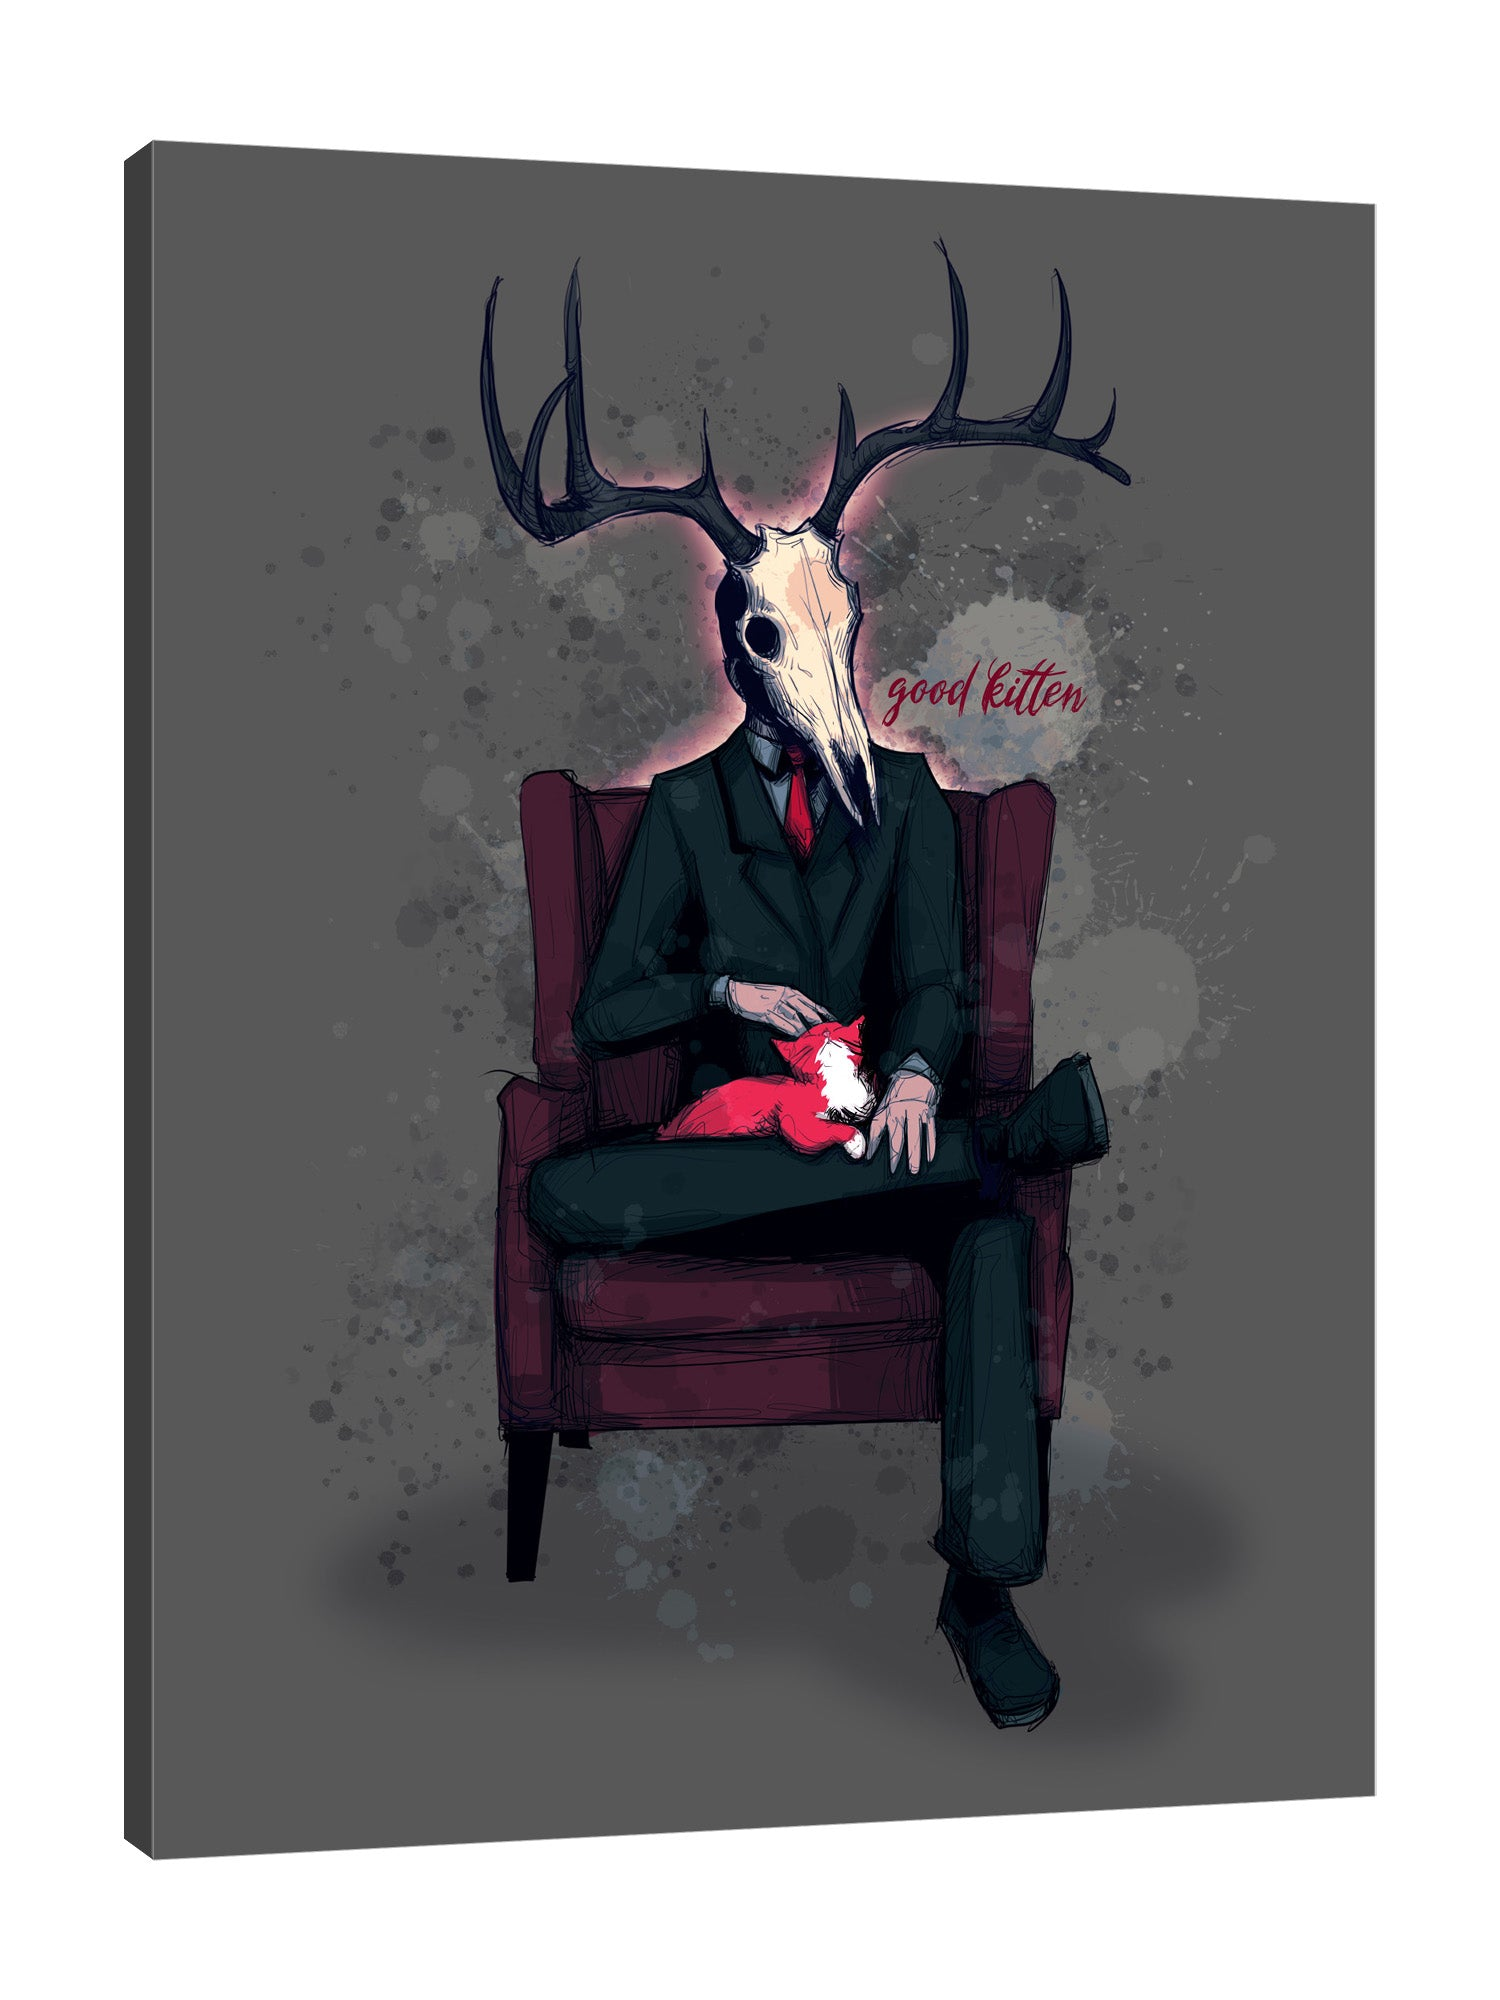 Ludwig-Van-Bacon,Vertical,3X4,Modern & Contemporary,Entertainment,People,Fantasy & Sci-Fi,Animals,bdsm,cosplay,words,deer,horns,suits,dad,costume,sitting,sit,animals,animal,cat.chair,chairs,Charcoal Gray,White,Black,Blue,Gray